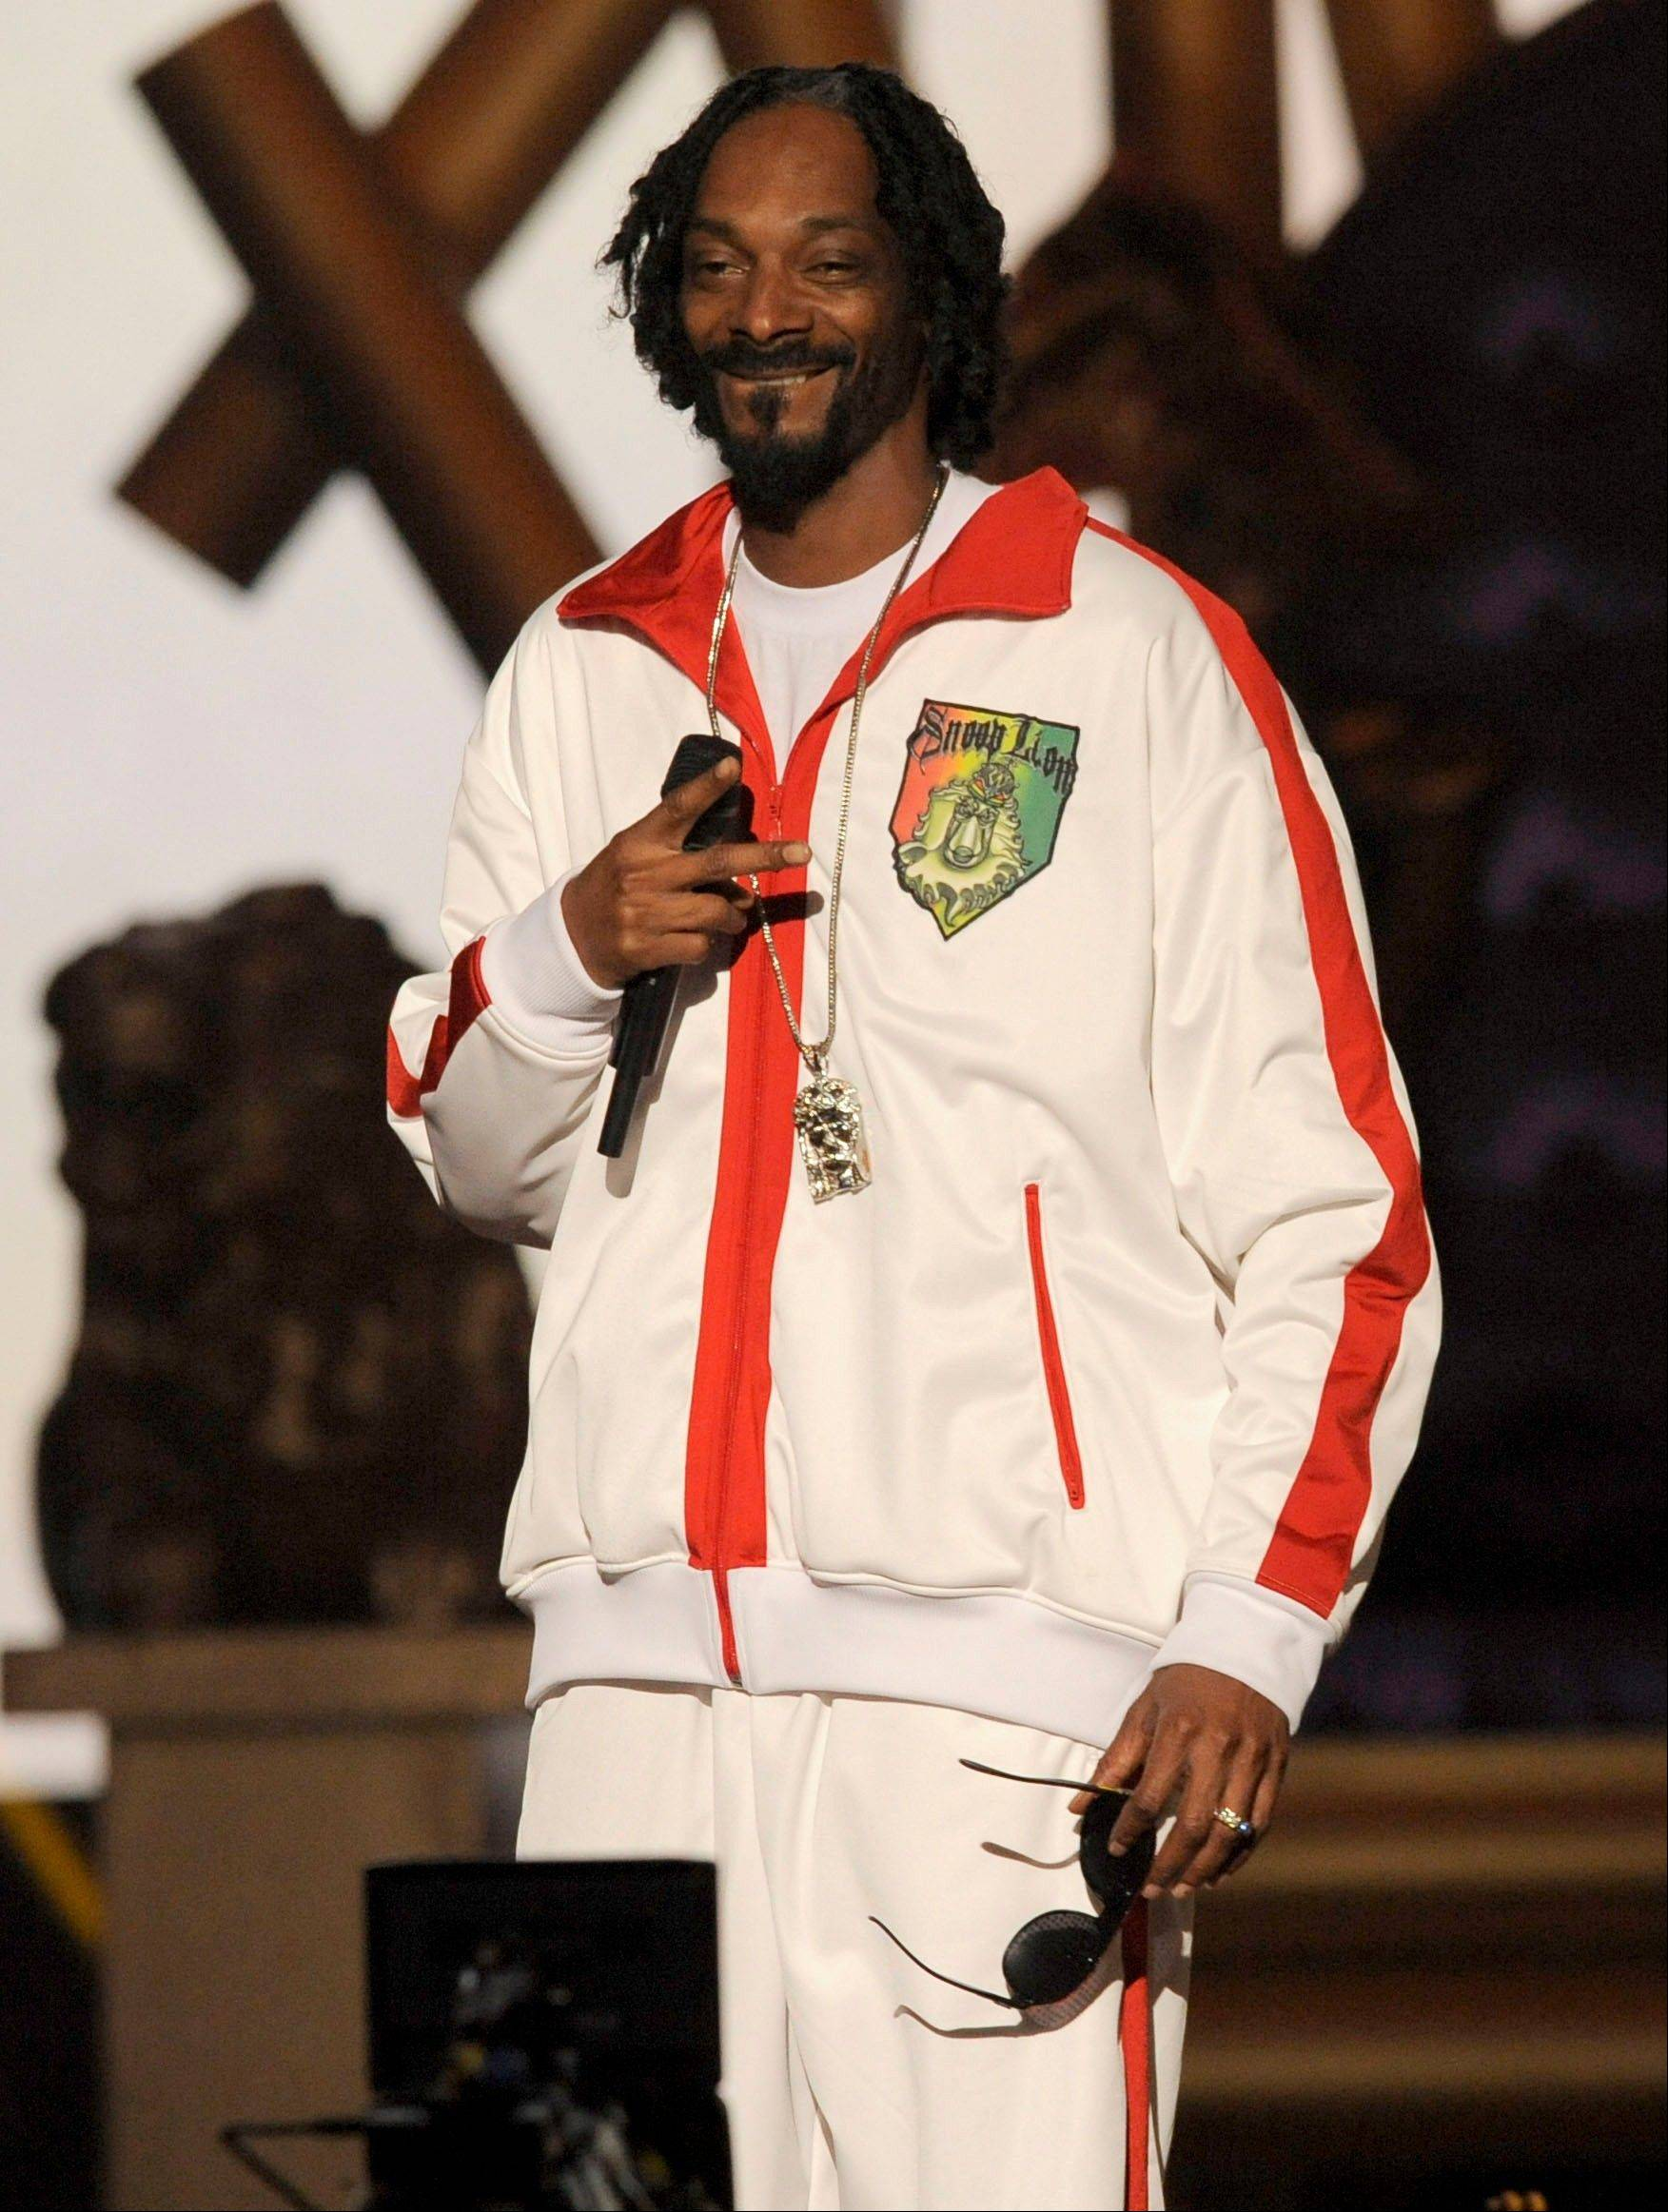 Snoop Lion performs Friday at Spike's 10th Annual Video Game Awards.